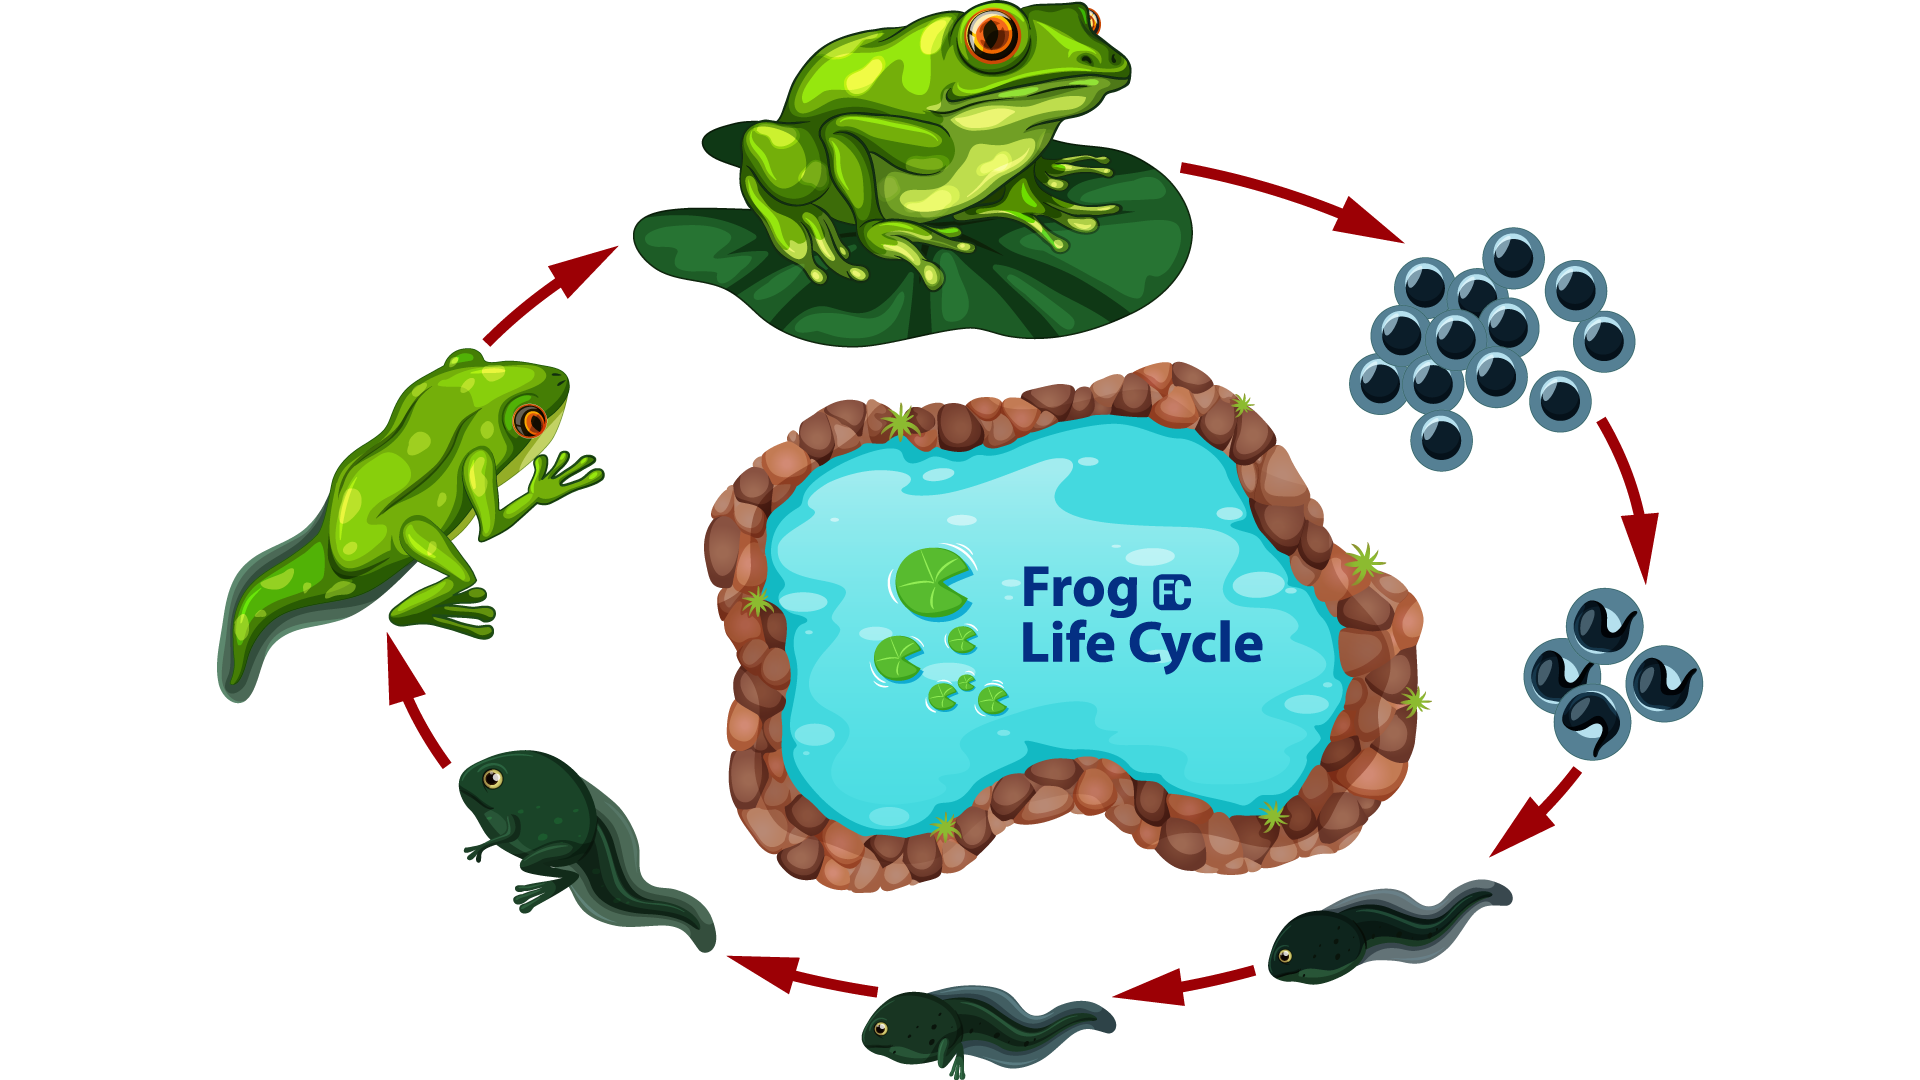 Frog-LifeCycle-Fllcasts